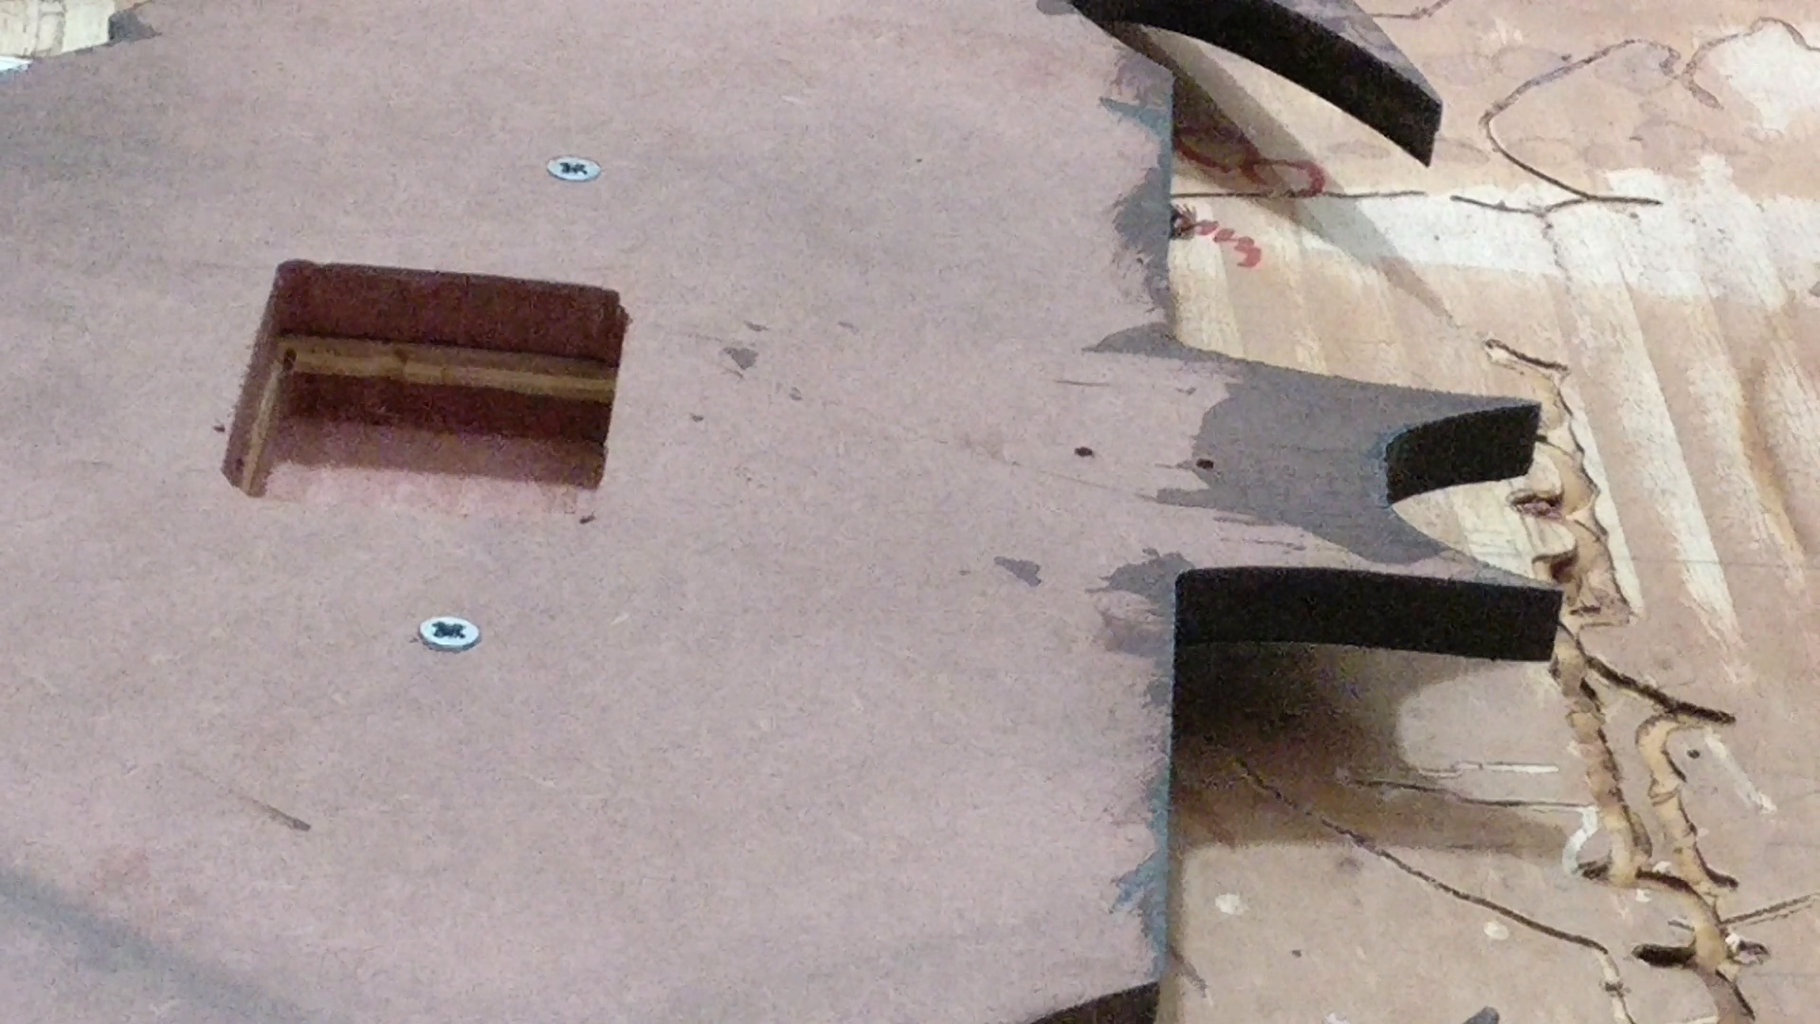 Machining at the Back for Clock Movement and Hardware Attachment for Hanging.